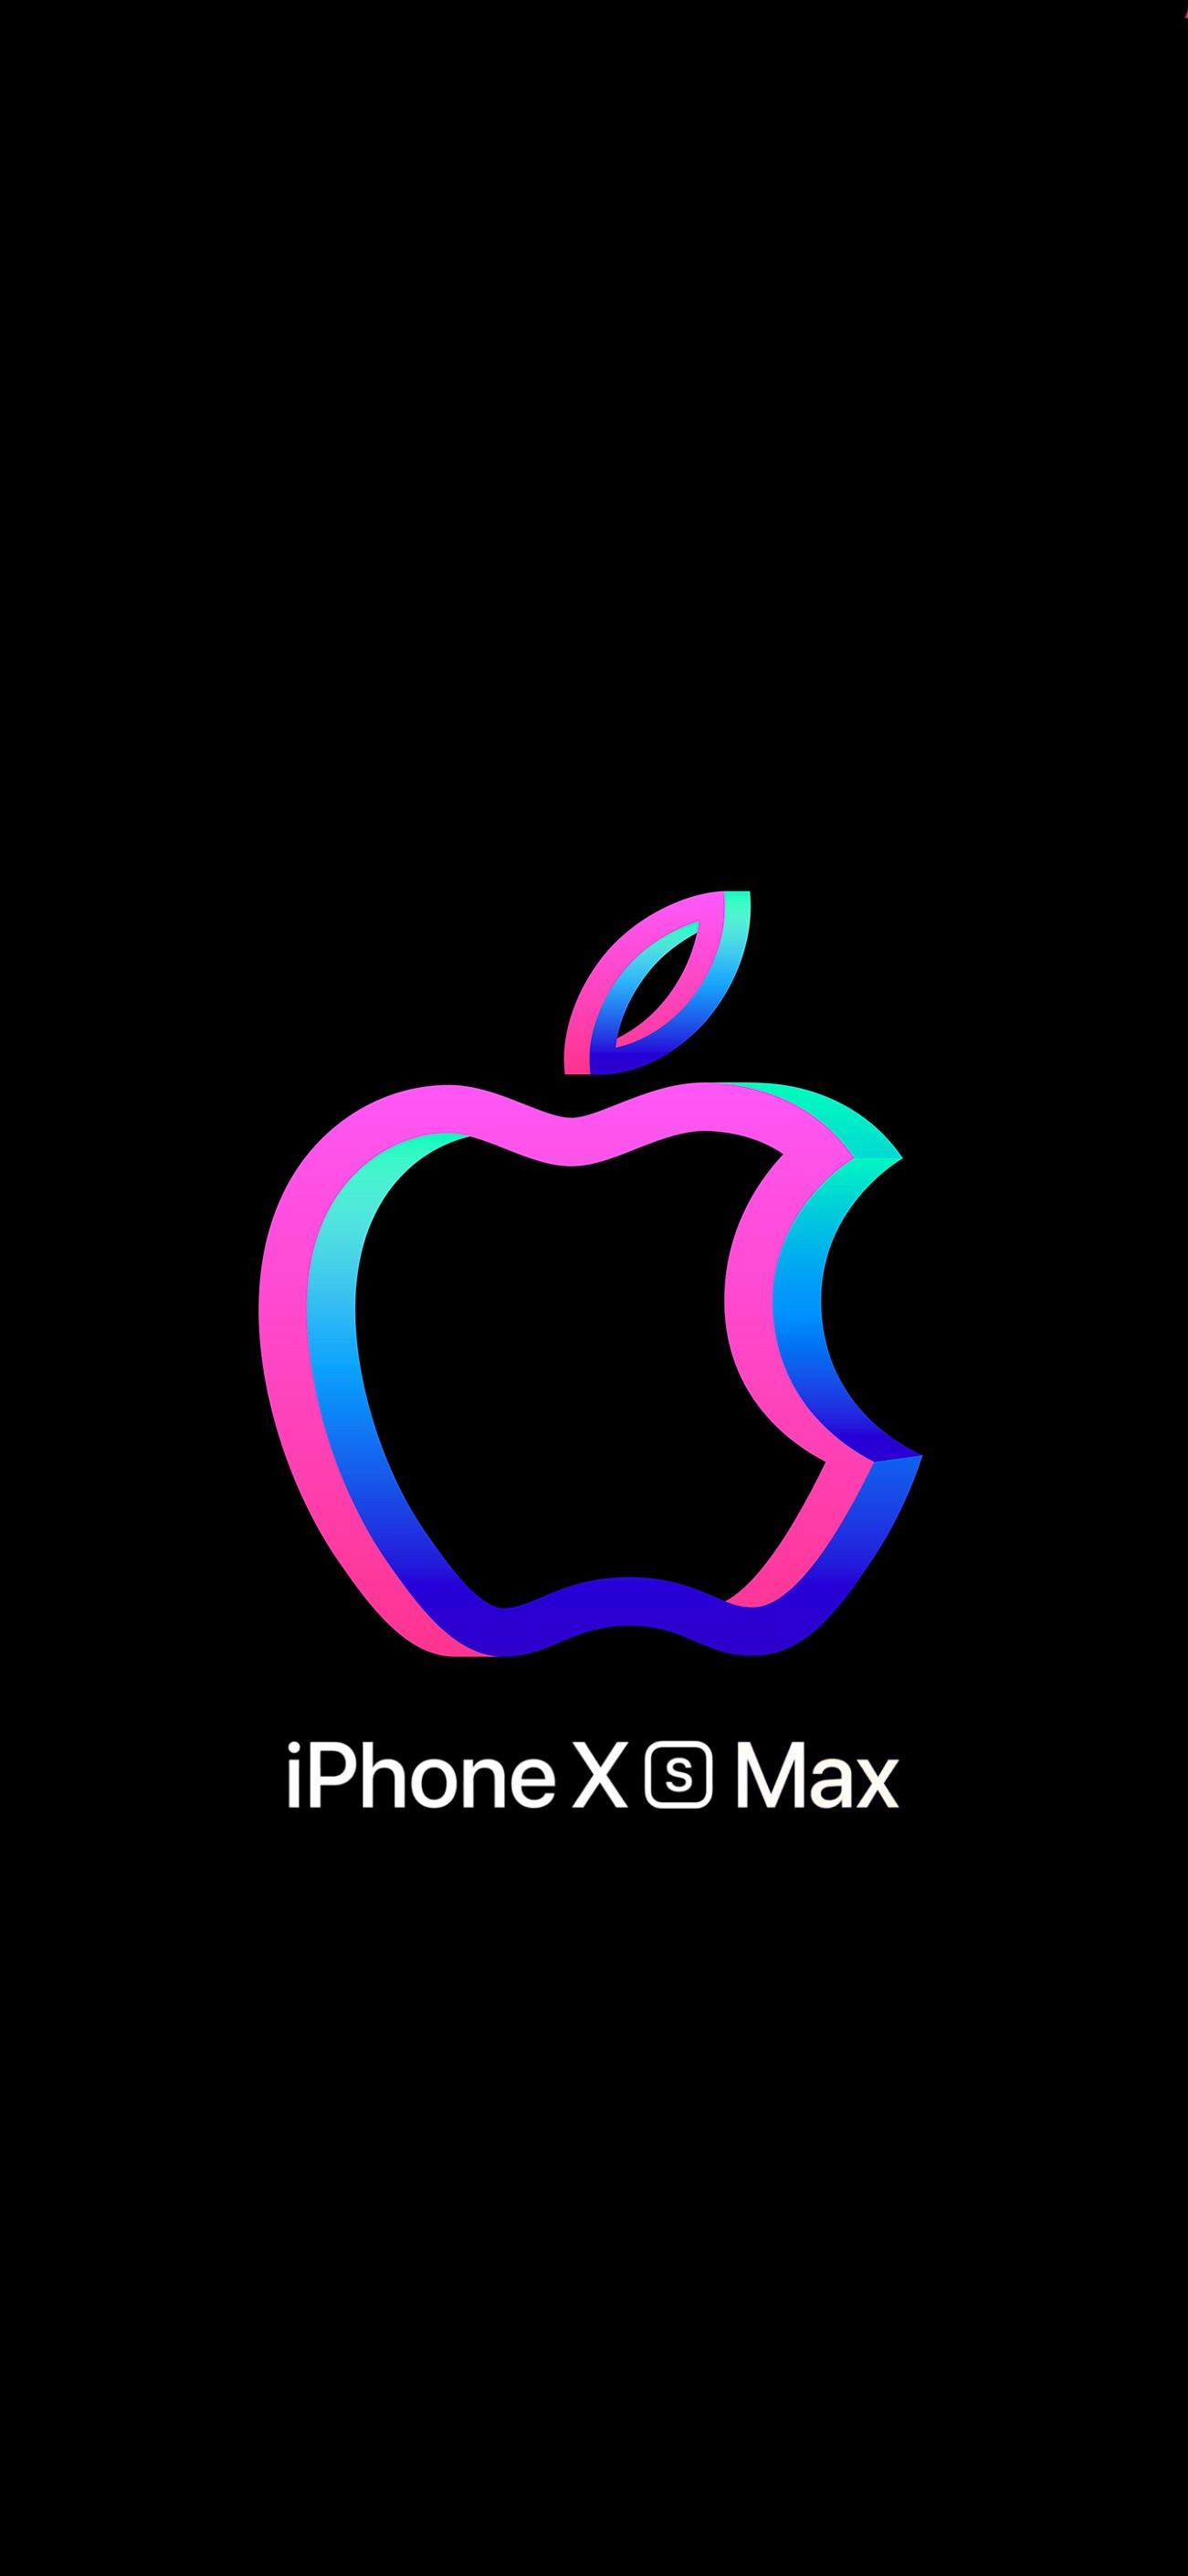 Iphone Xs Max Wallpaper Apple 2286160 Hd Wallpaper Backgrounds Download